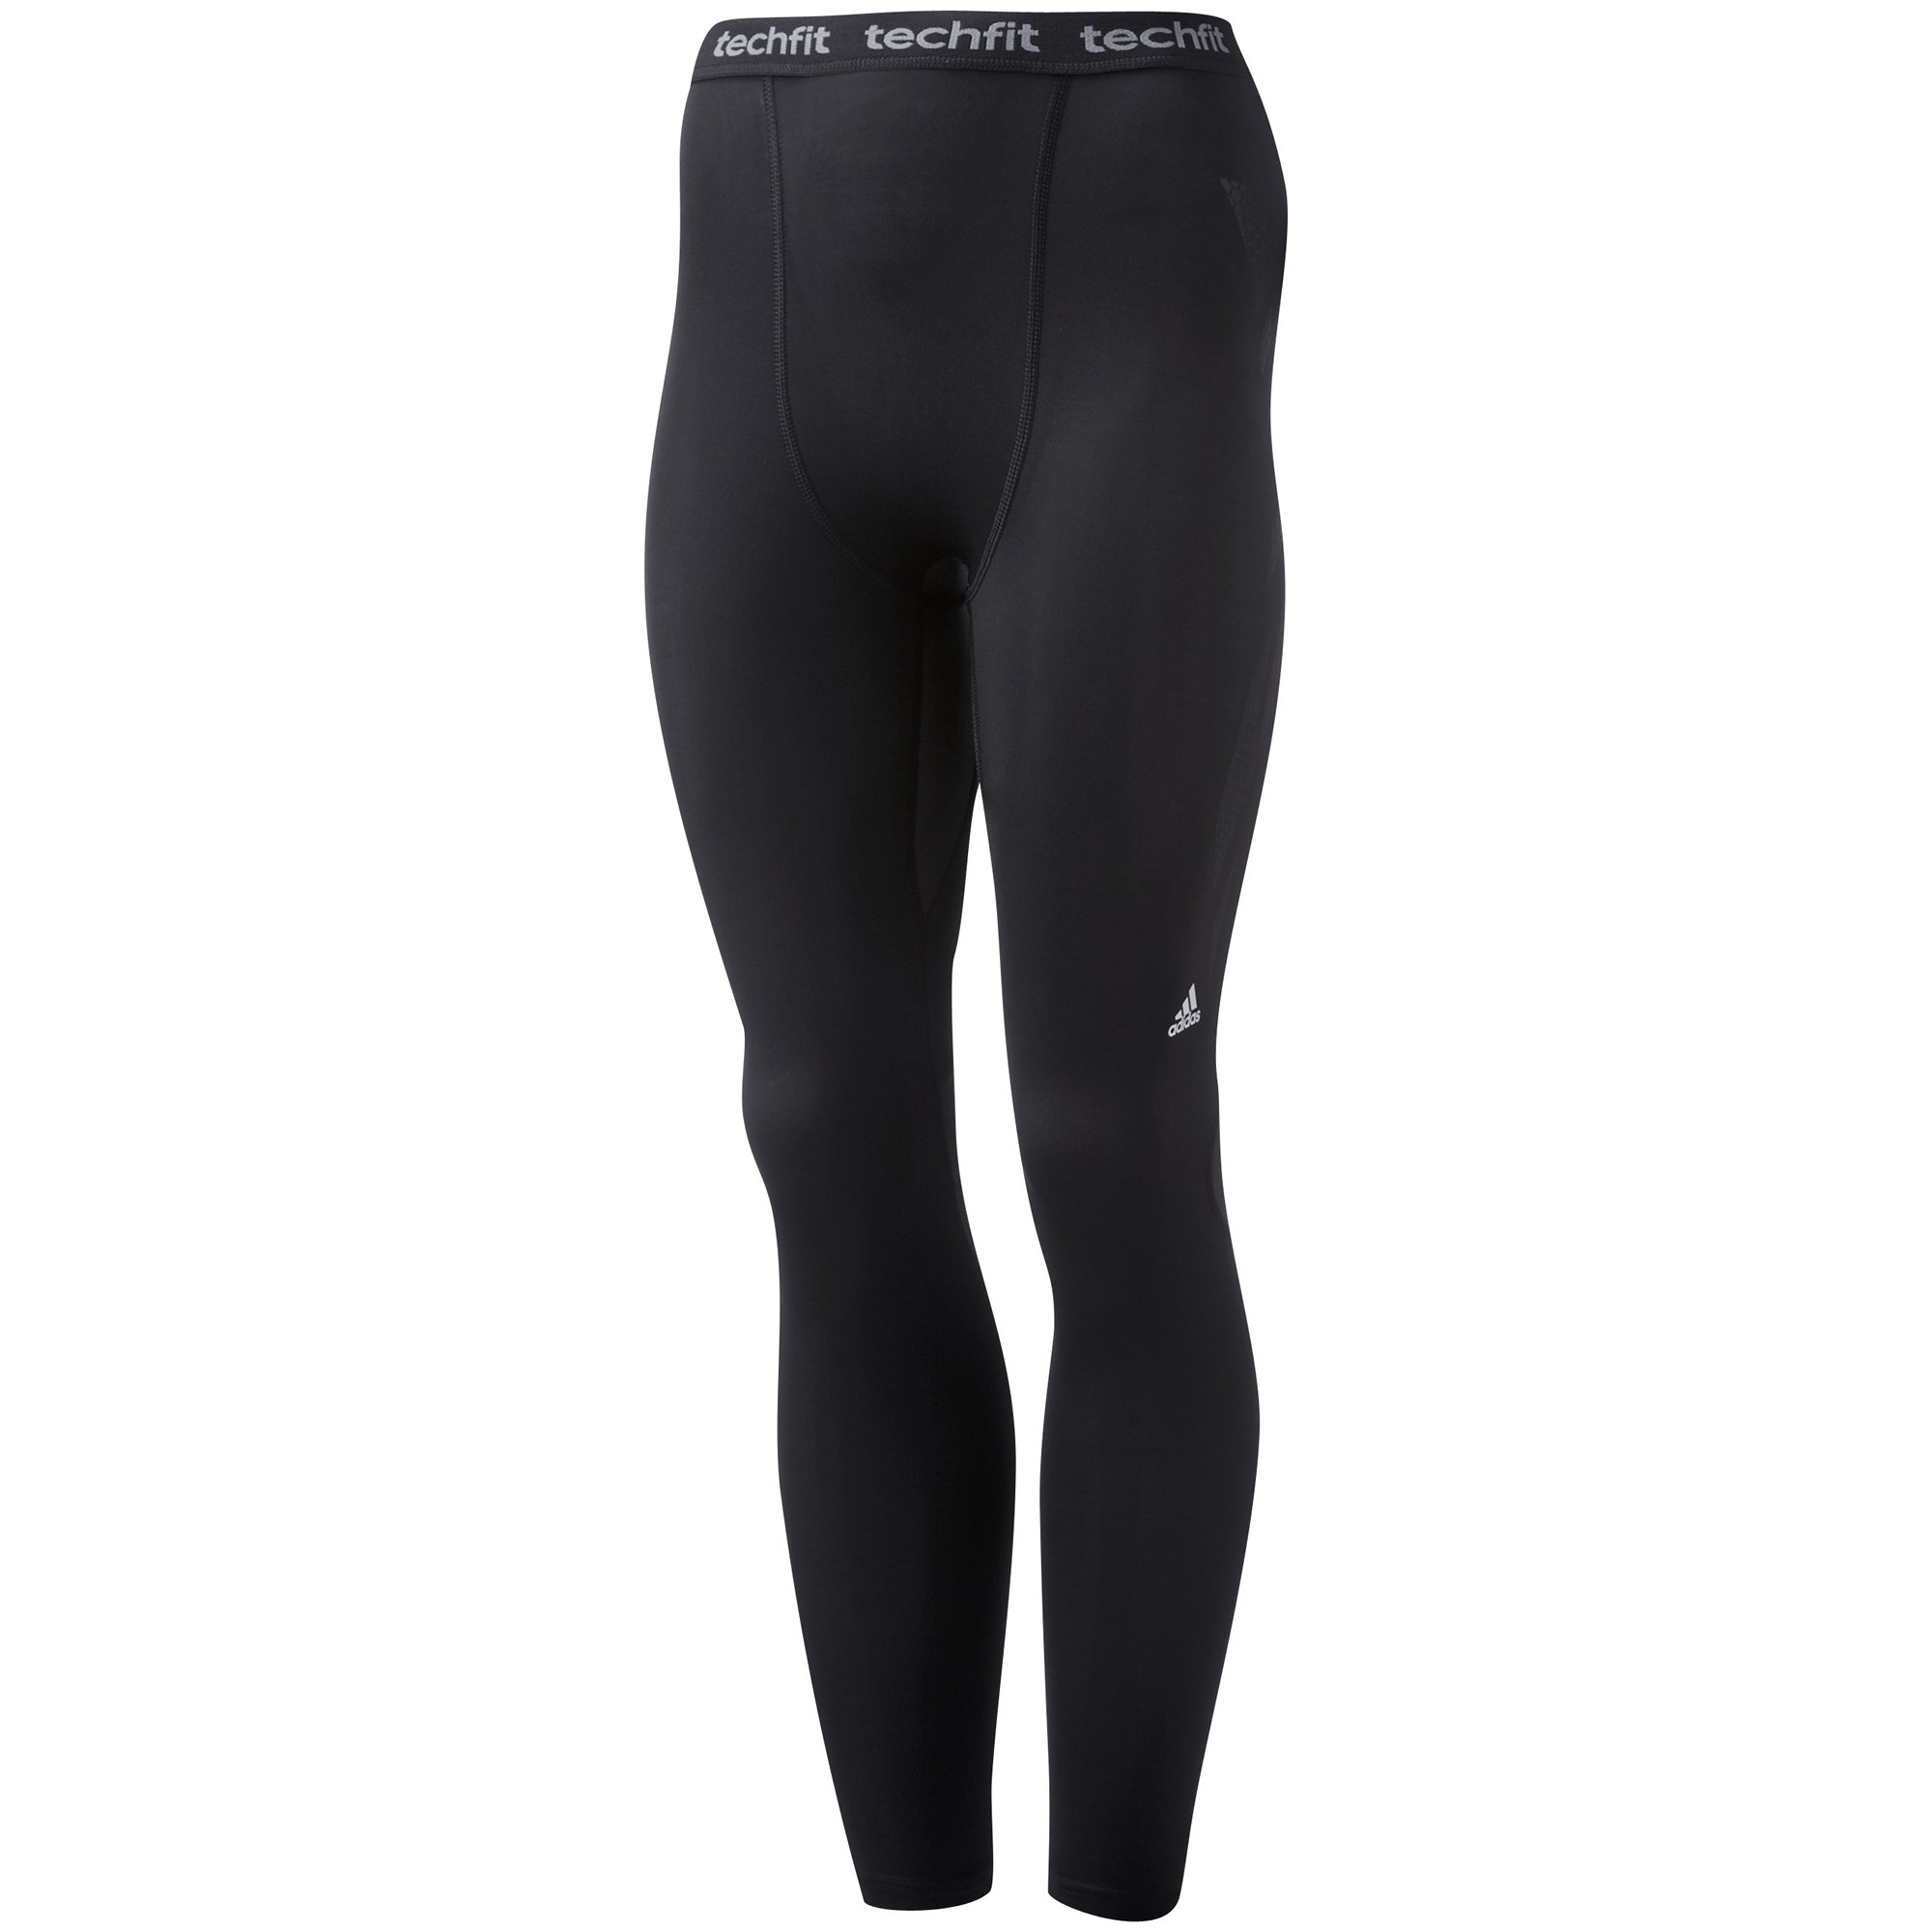 Wiggle | Adidas Techfit Preparation Long Tight - AW13 ...